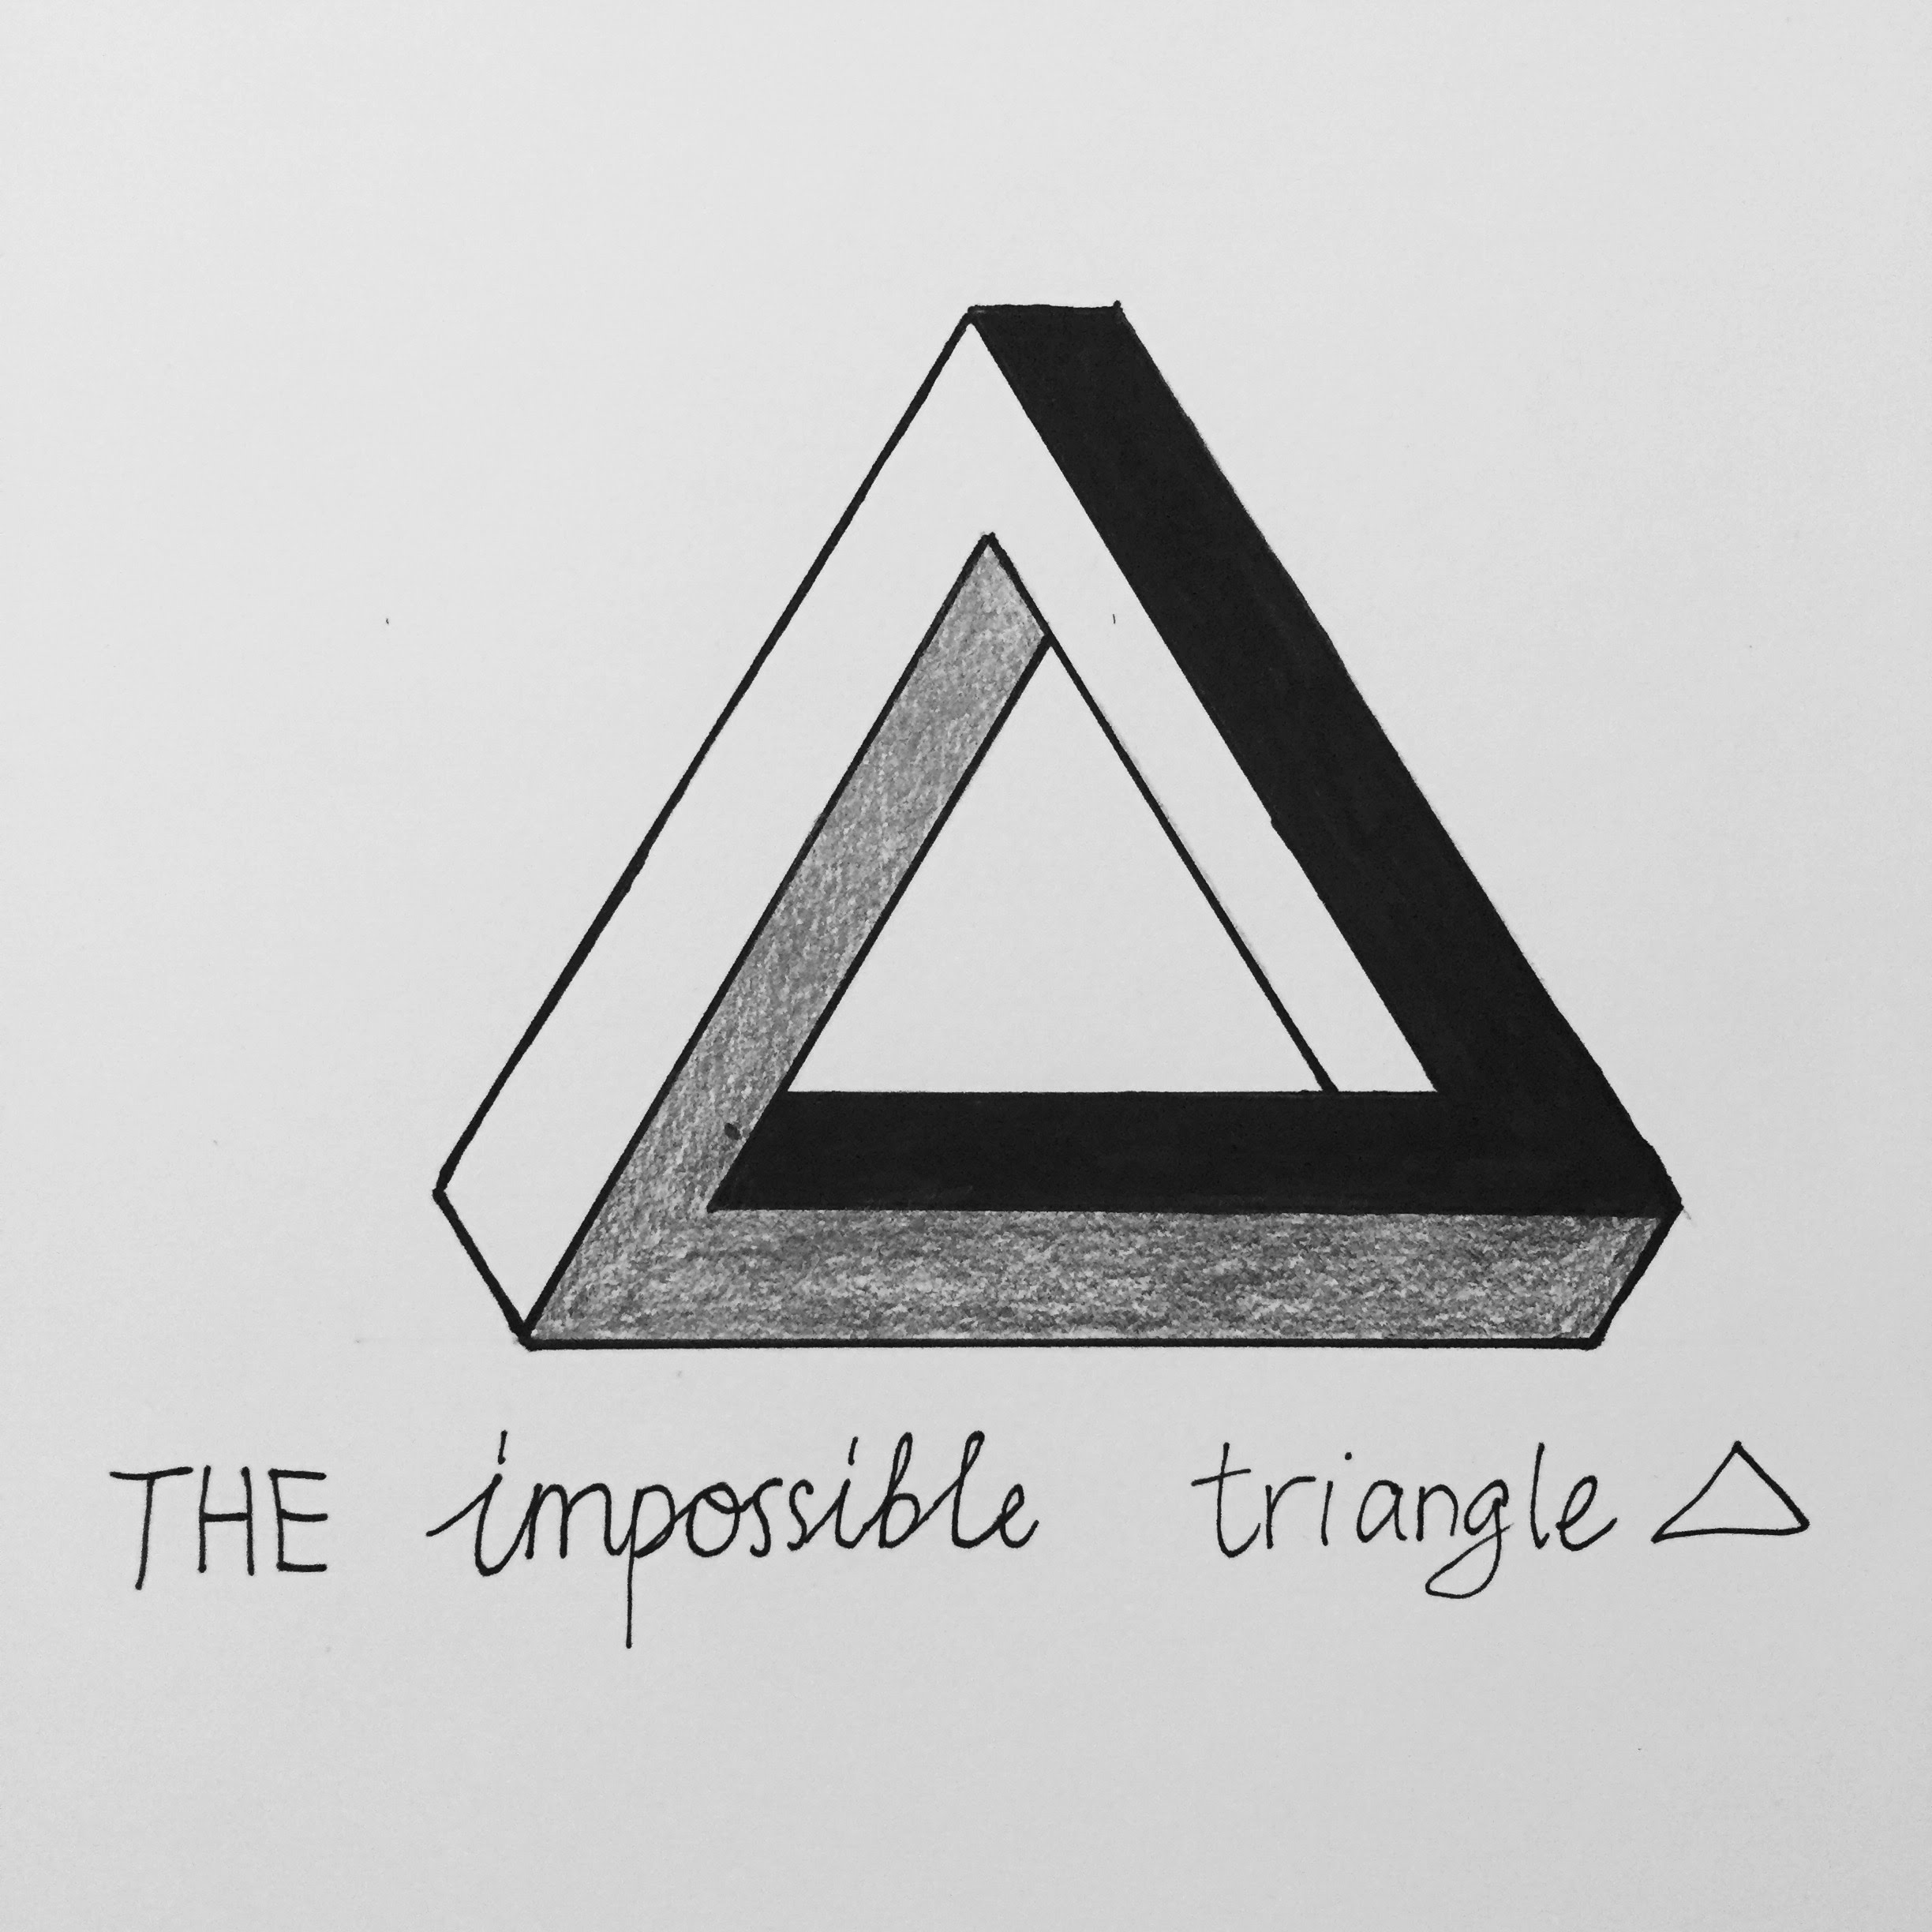 Drawn illuminati triangle Impossible Impossible YouTube How The